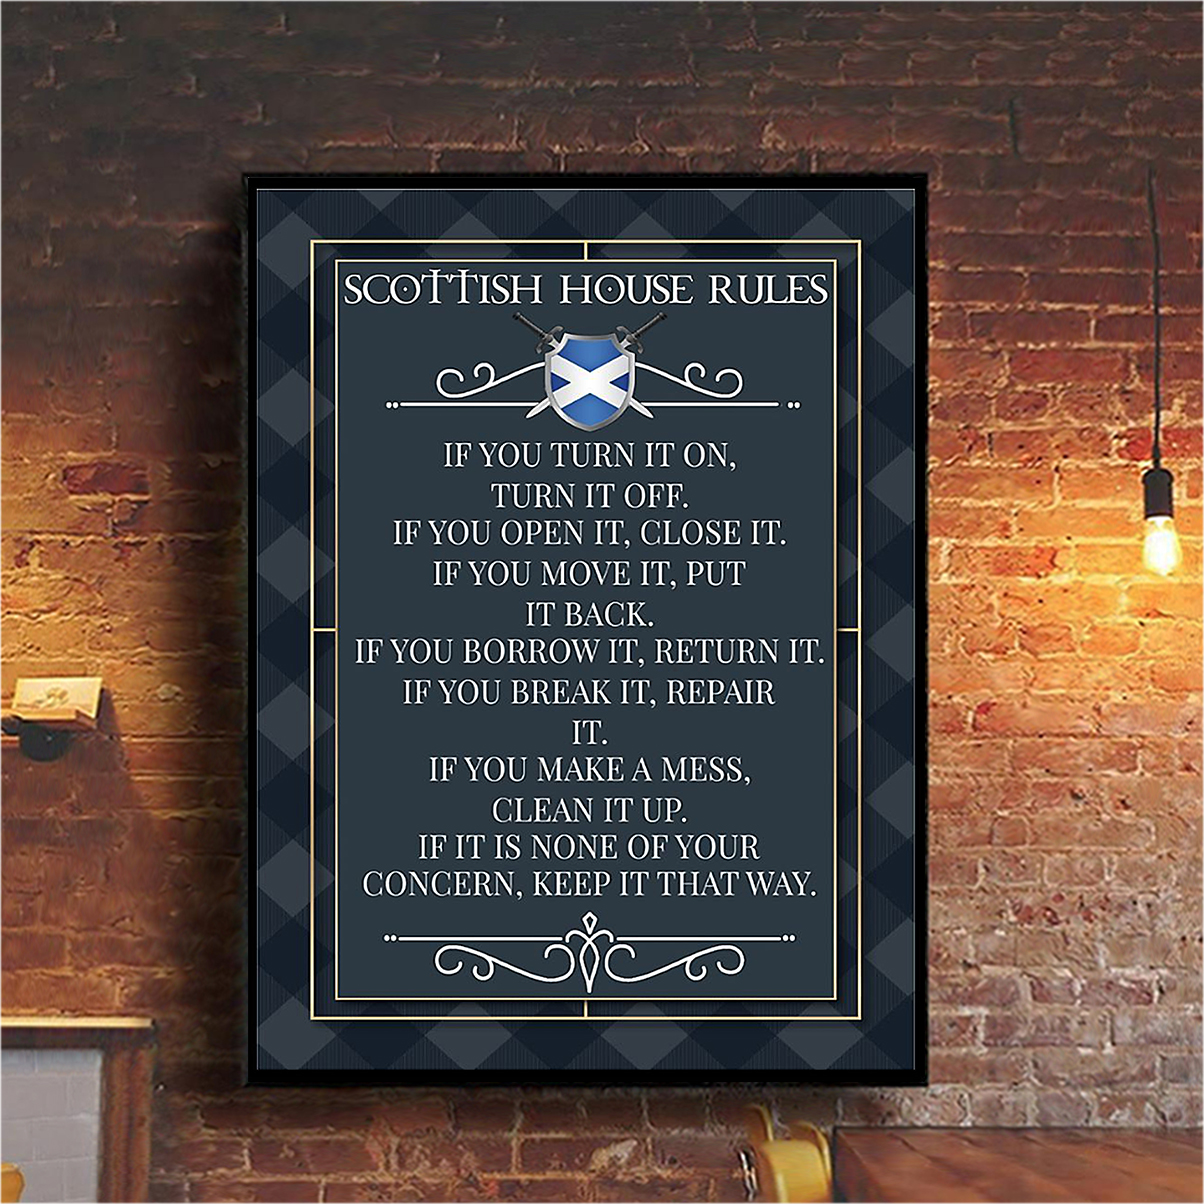 Scottish house rules poster A1